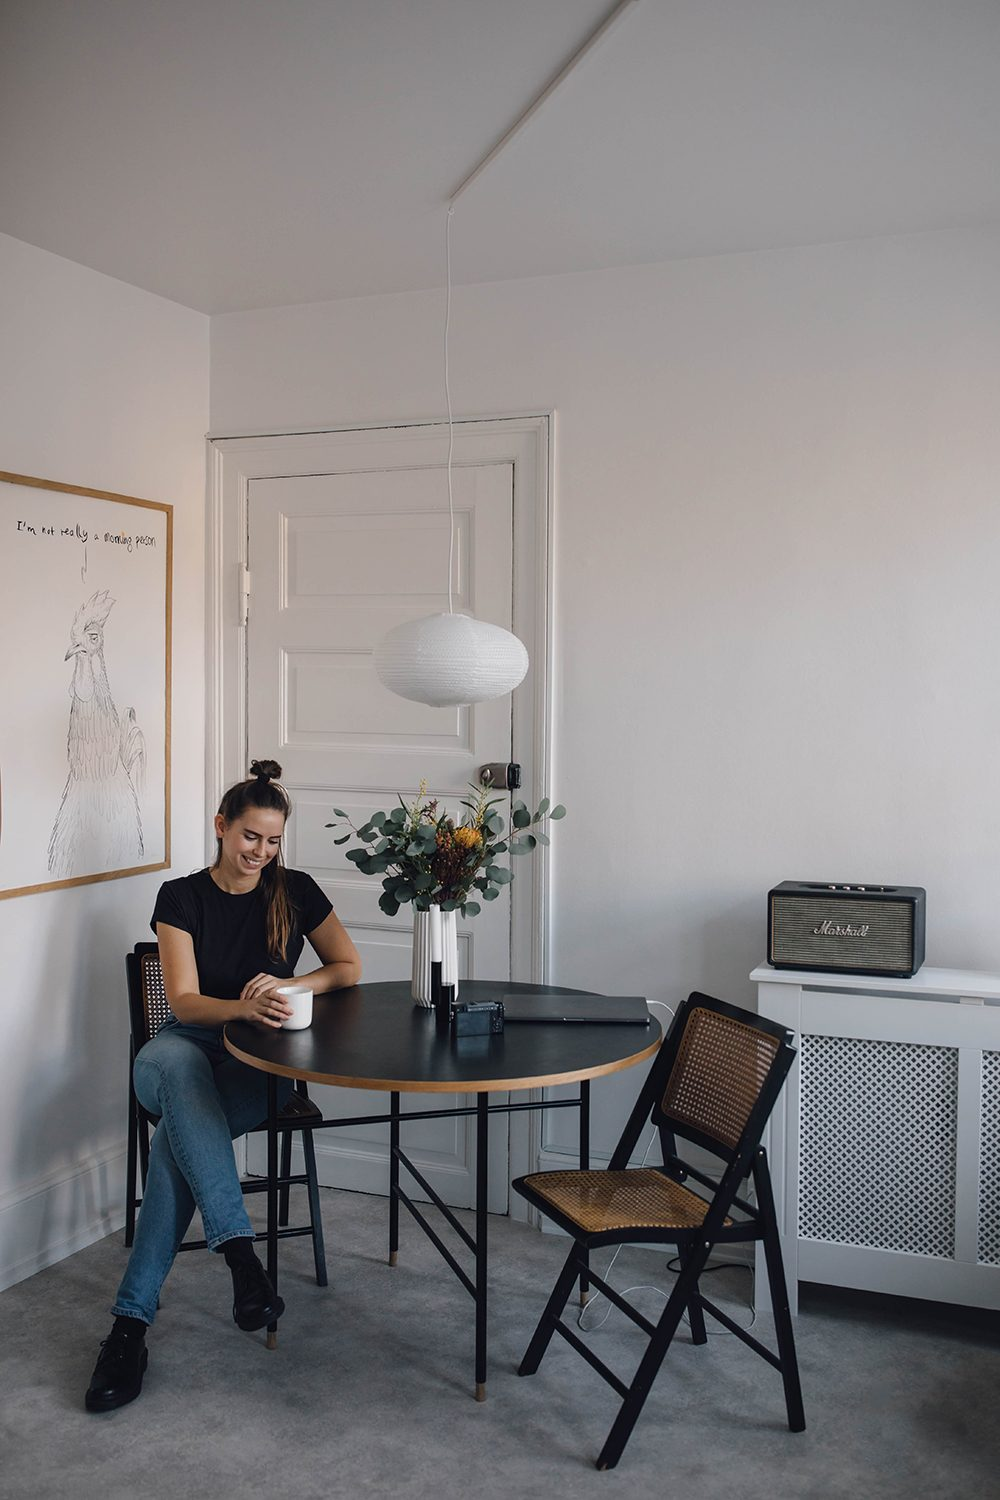 Home Tour with Amanda Lilholt in Copenhagen